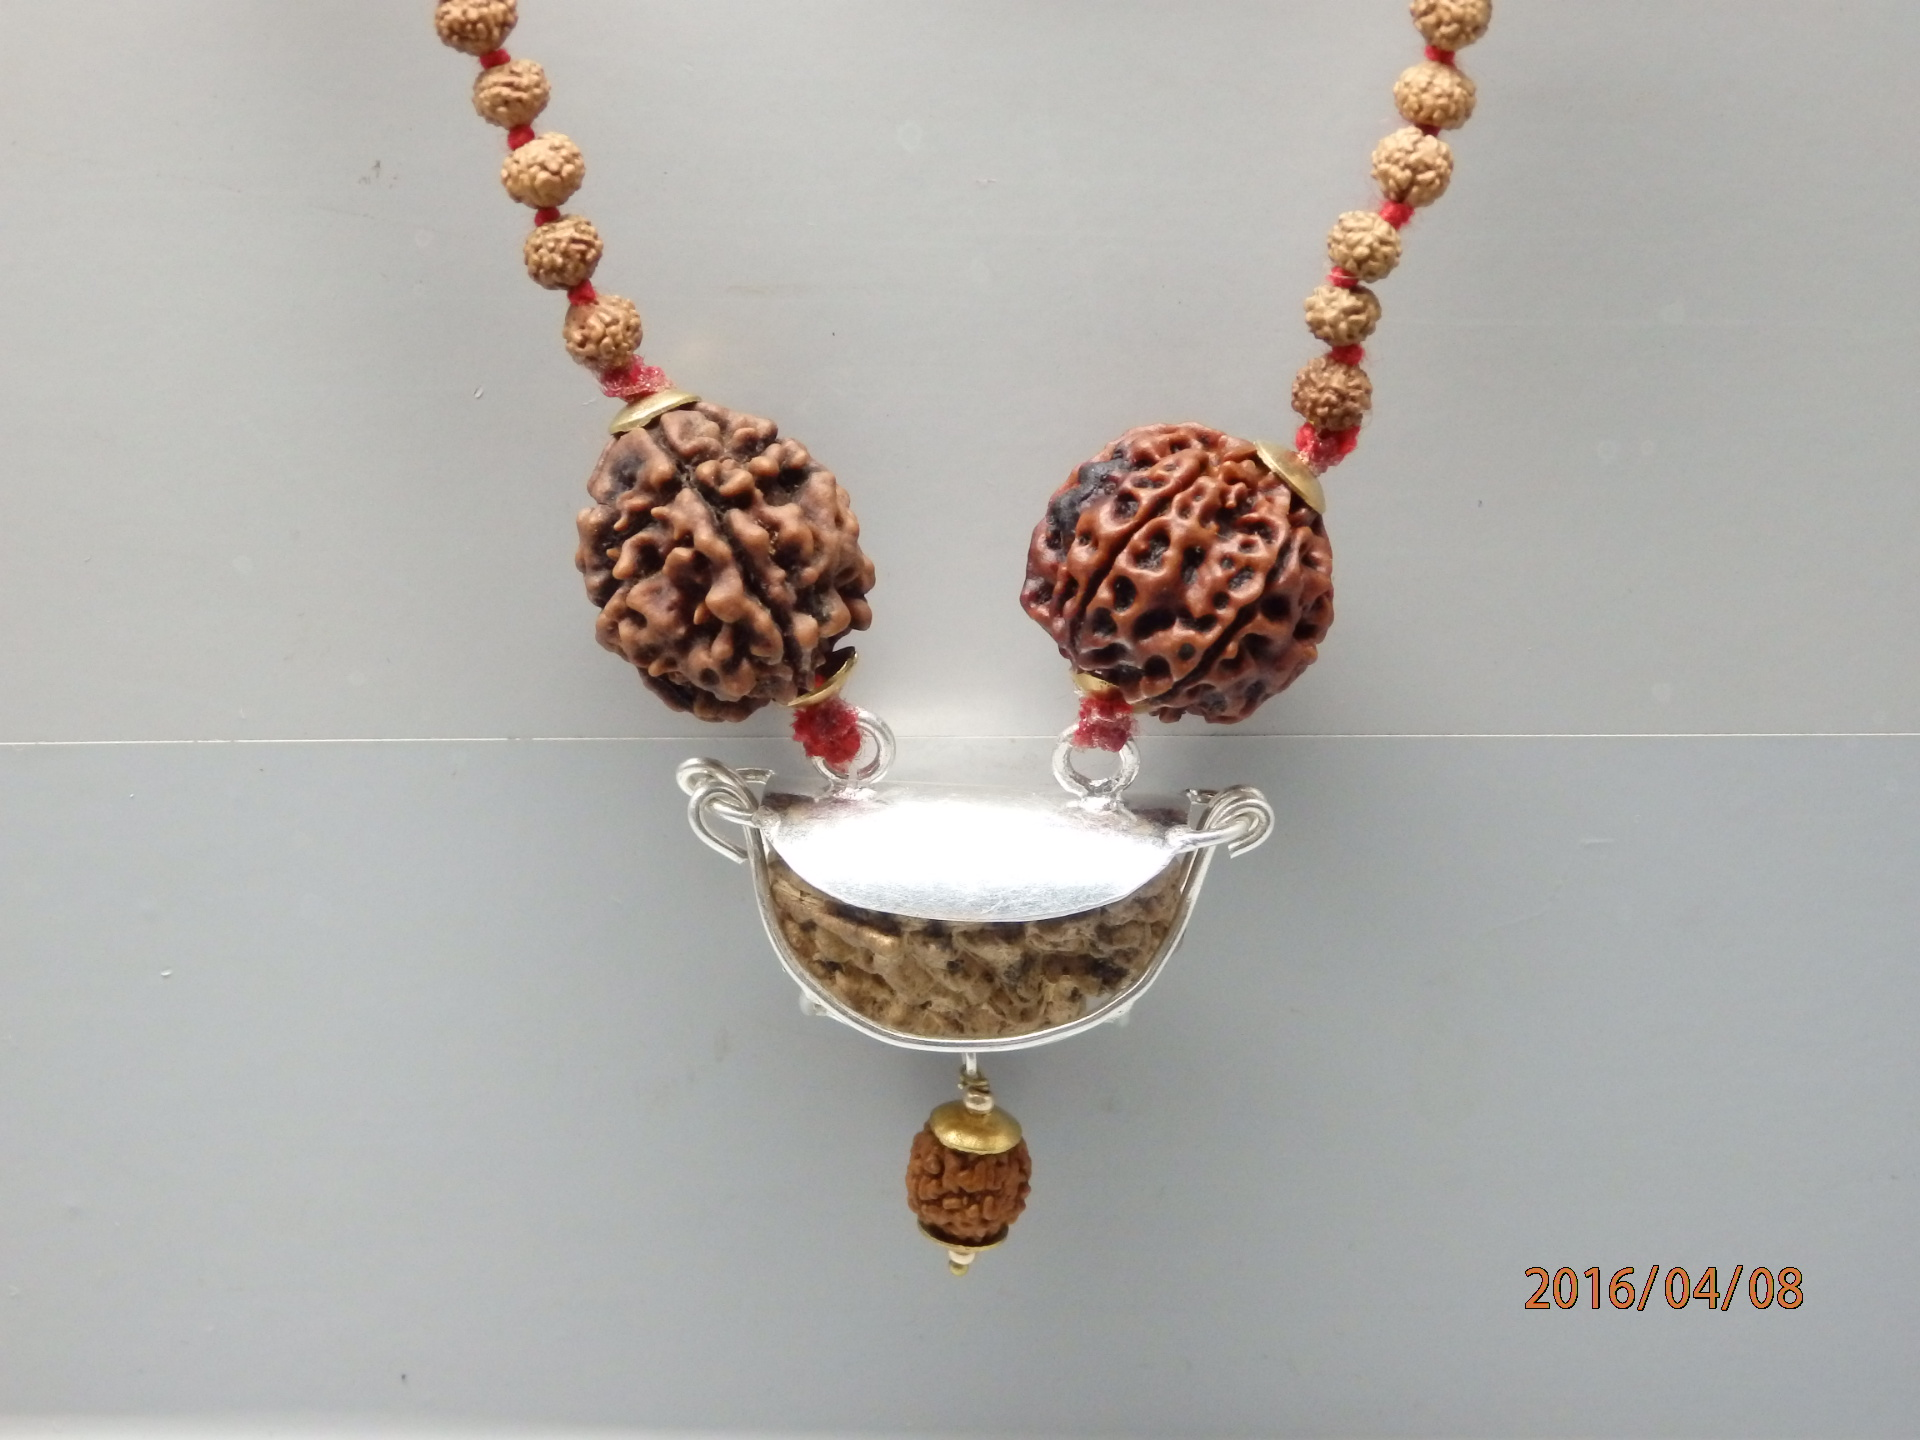 2 Mukhi Communication Rudraksha Kavach